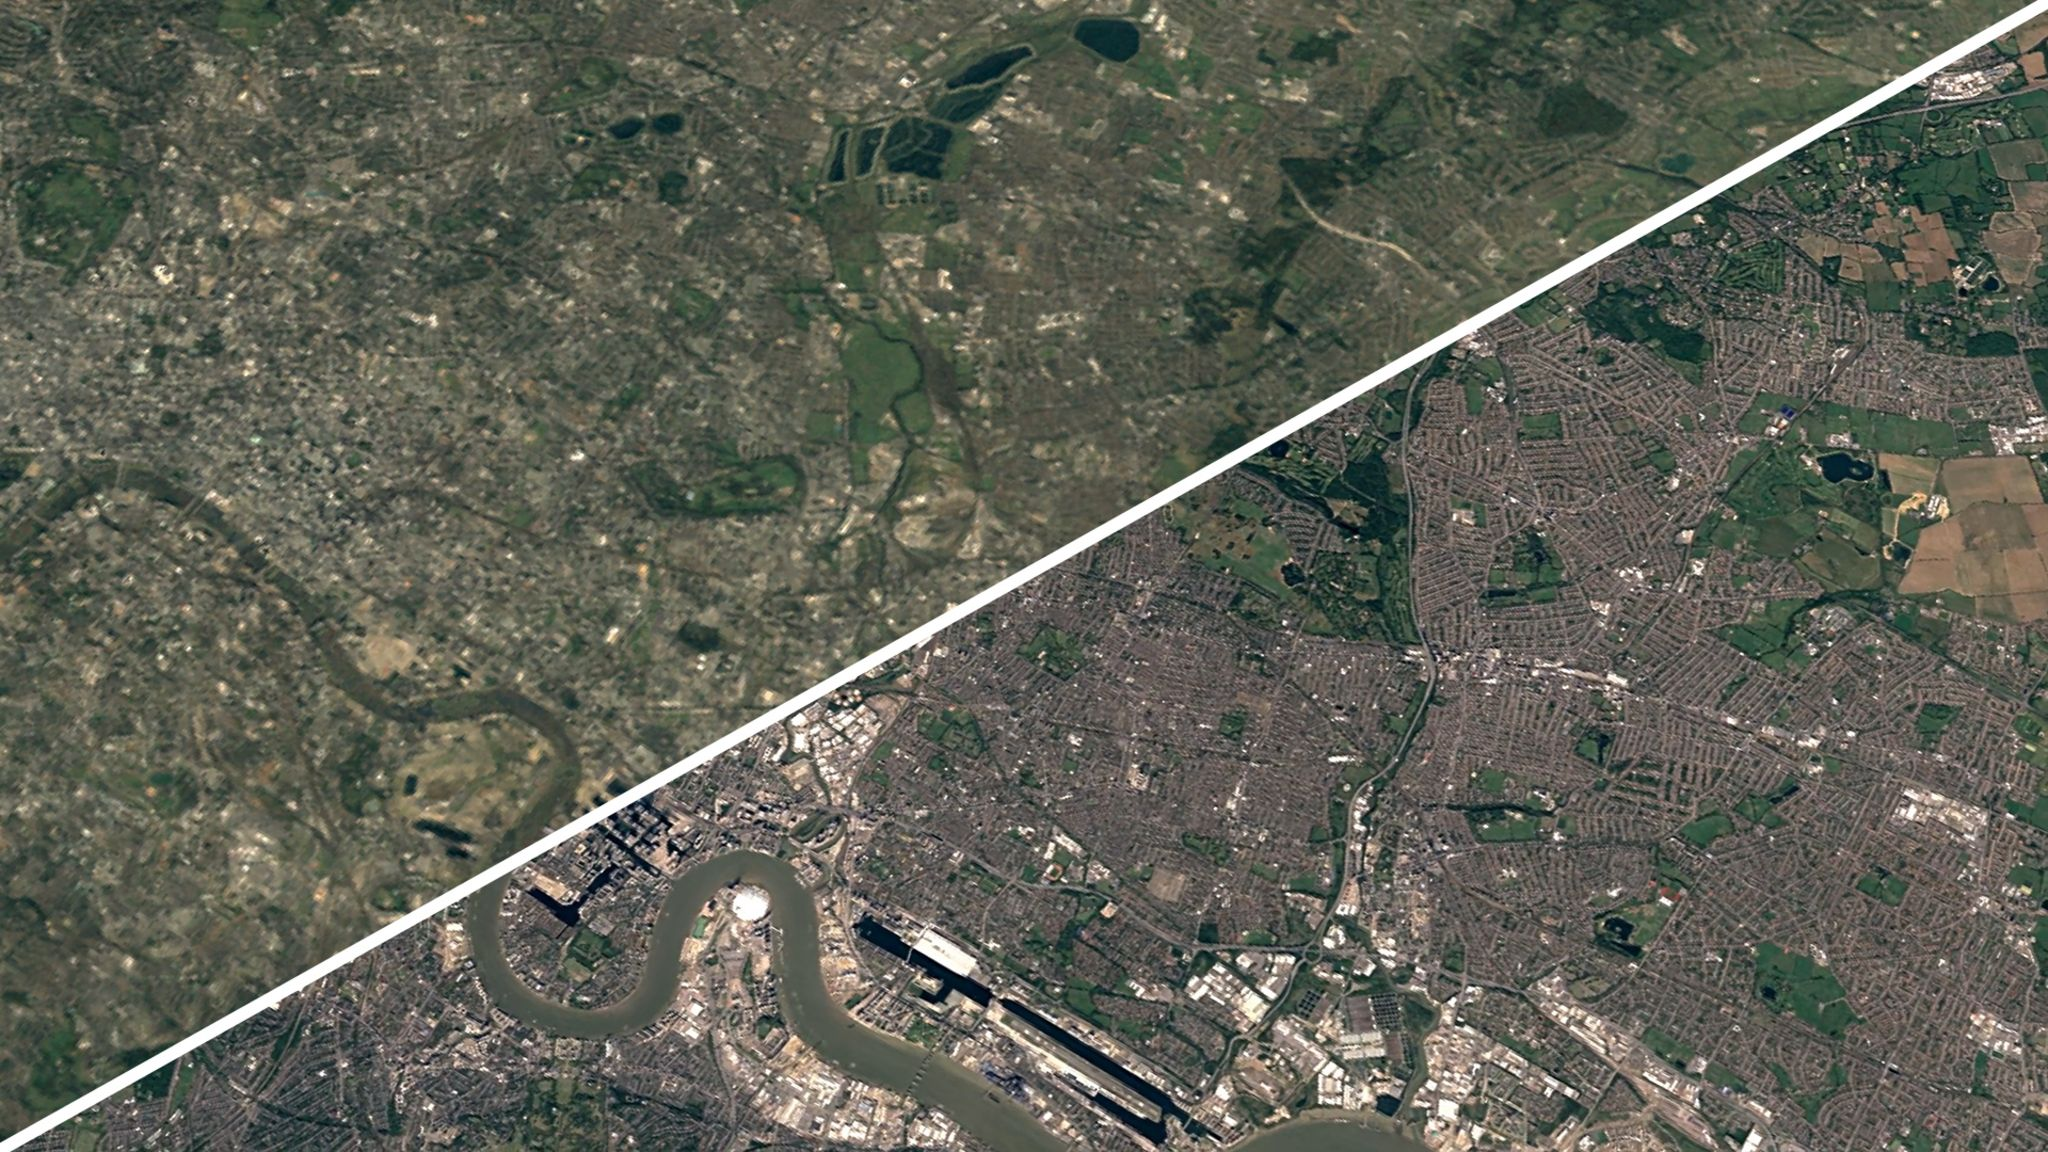 A diagonal line splits an image of East London - on the left, green fields dominate - on the right, built-up areas have taken over the green space as far as the eye can see